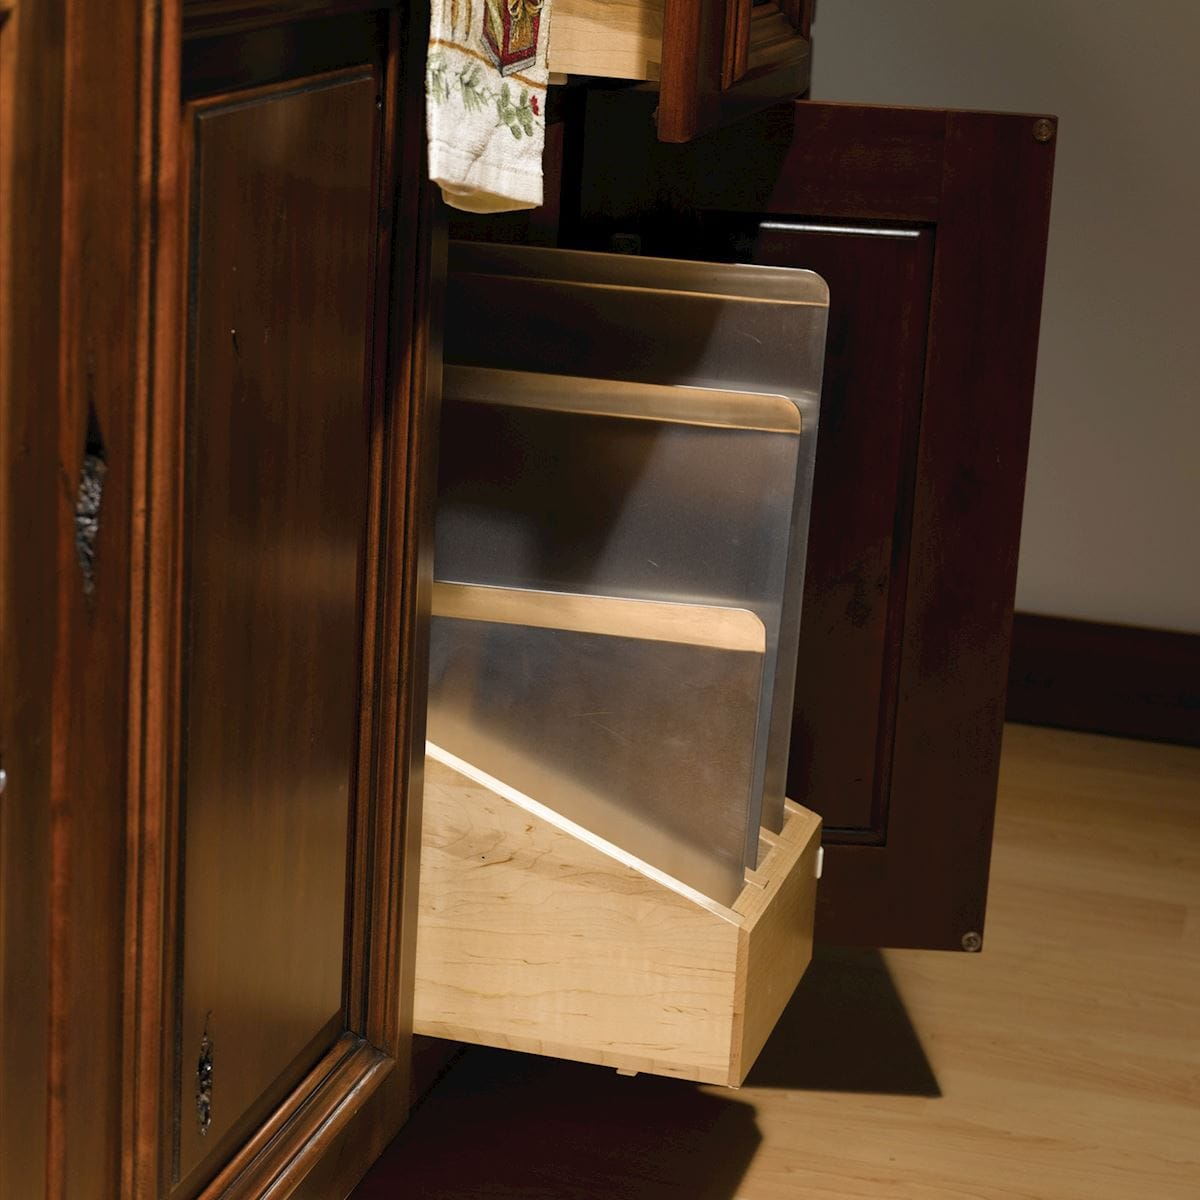 Tray Divider Rollout Accessories Bertch Cabinet Manufacturing